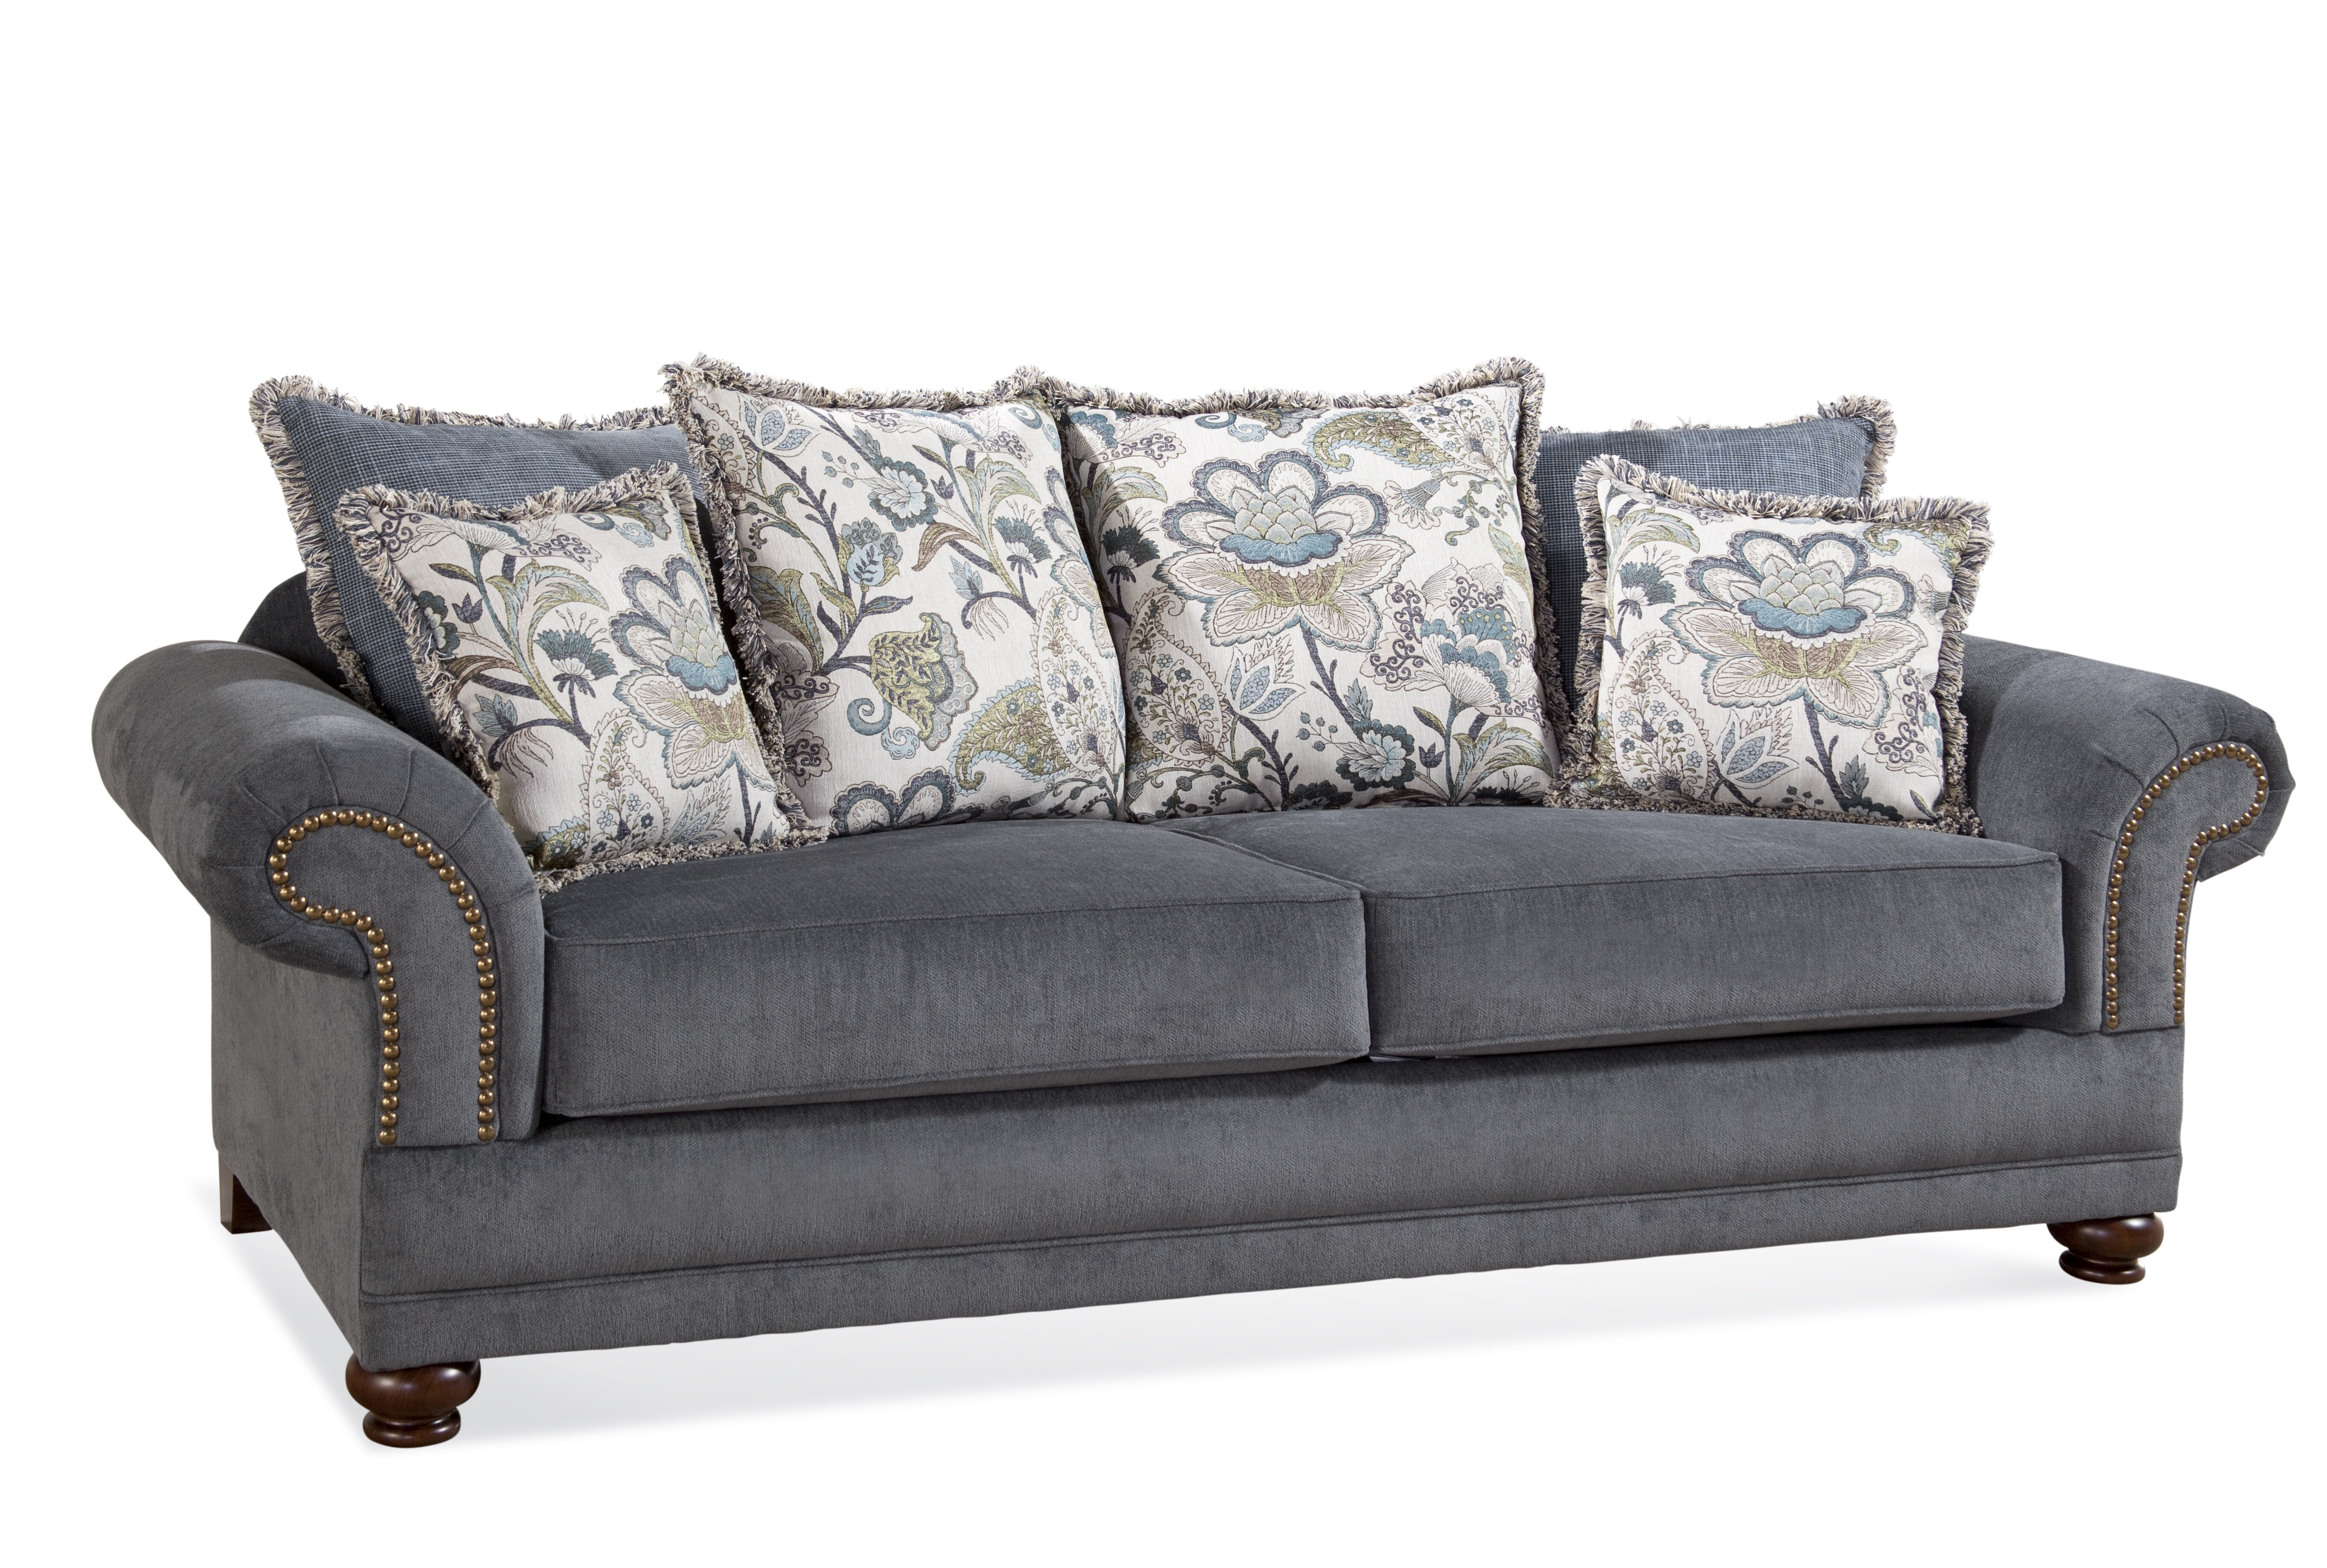 Darby Home Co 96 Rolled Arms Sofa